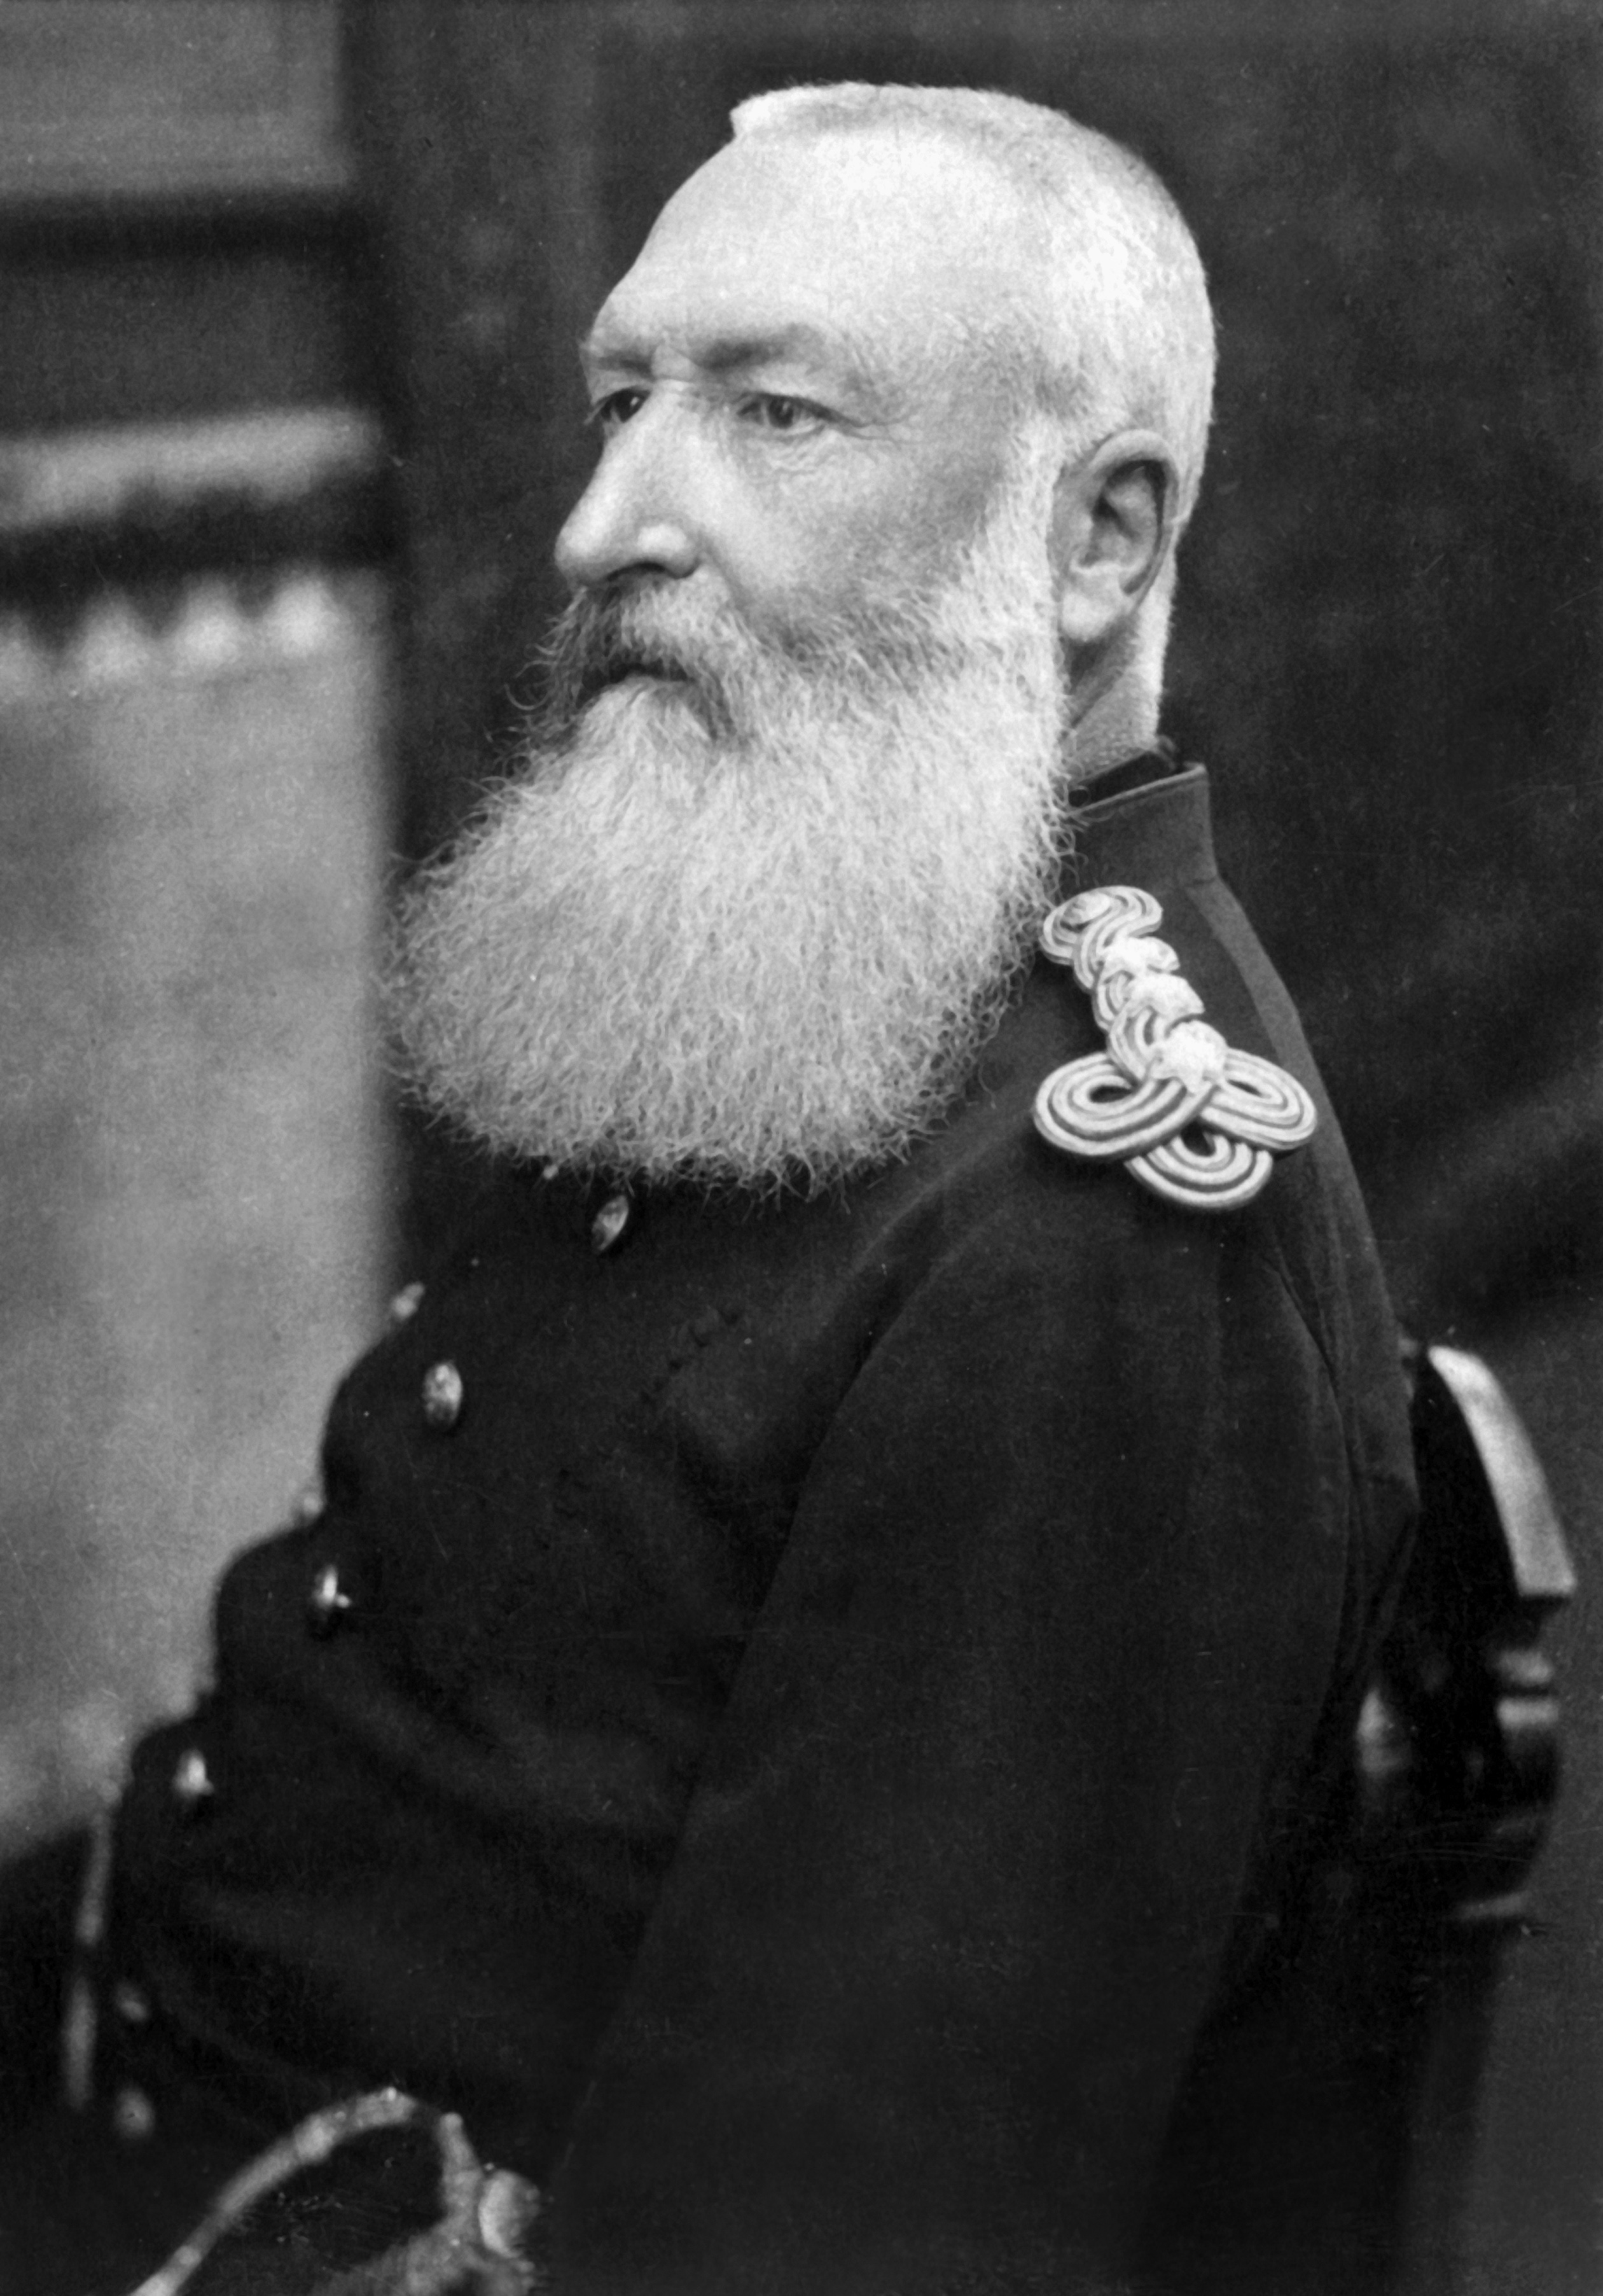 Leopold II king of the Belgians (1935-1909) King in 1865 when his father LeopoldI died, c. 1900 Felix Potin collection